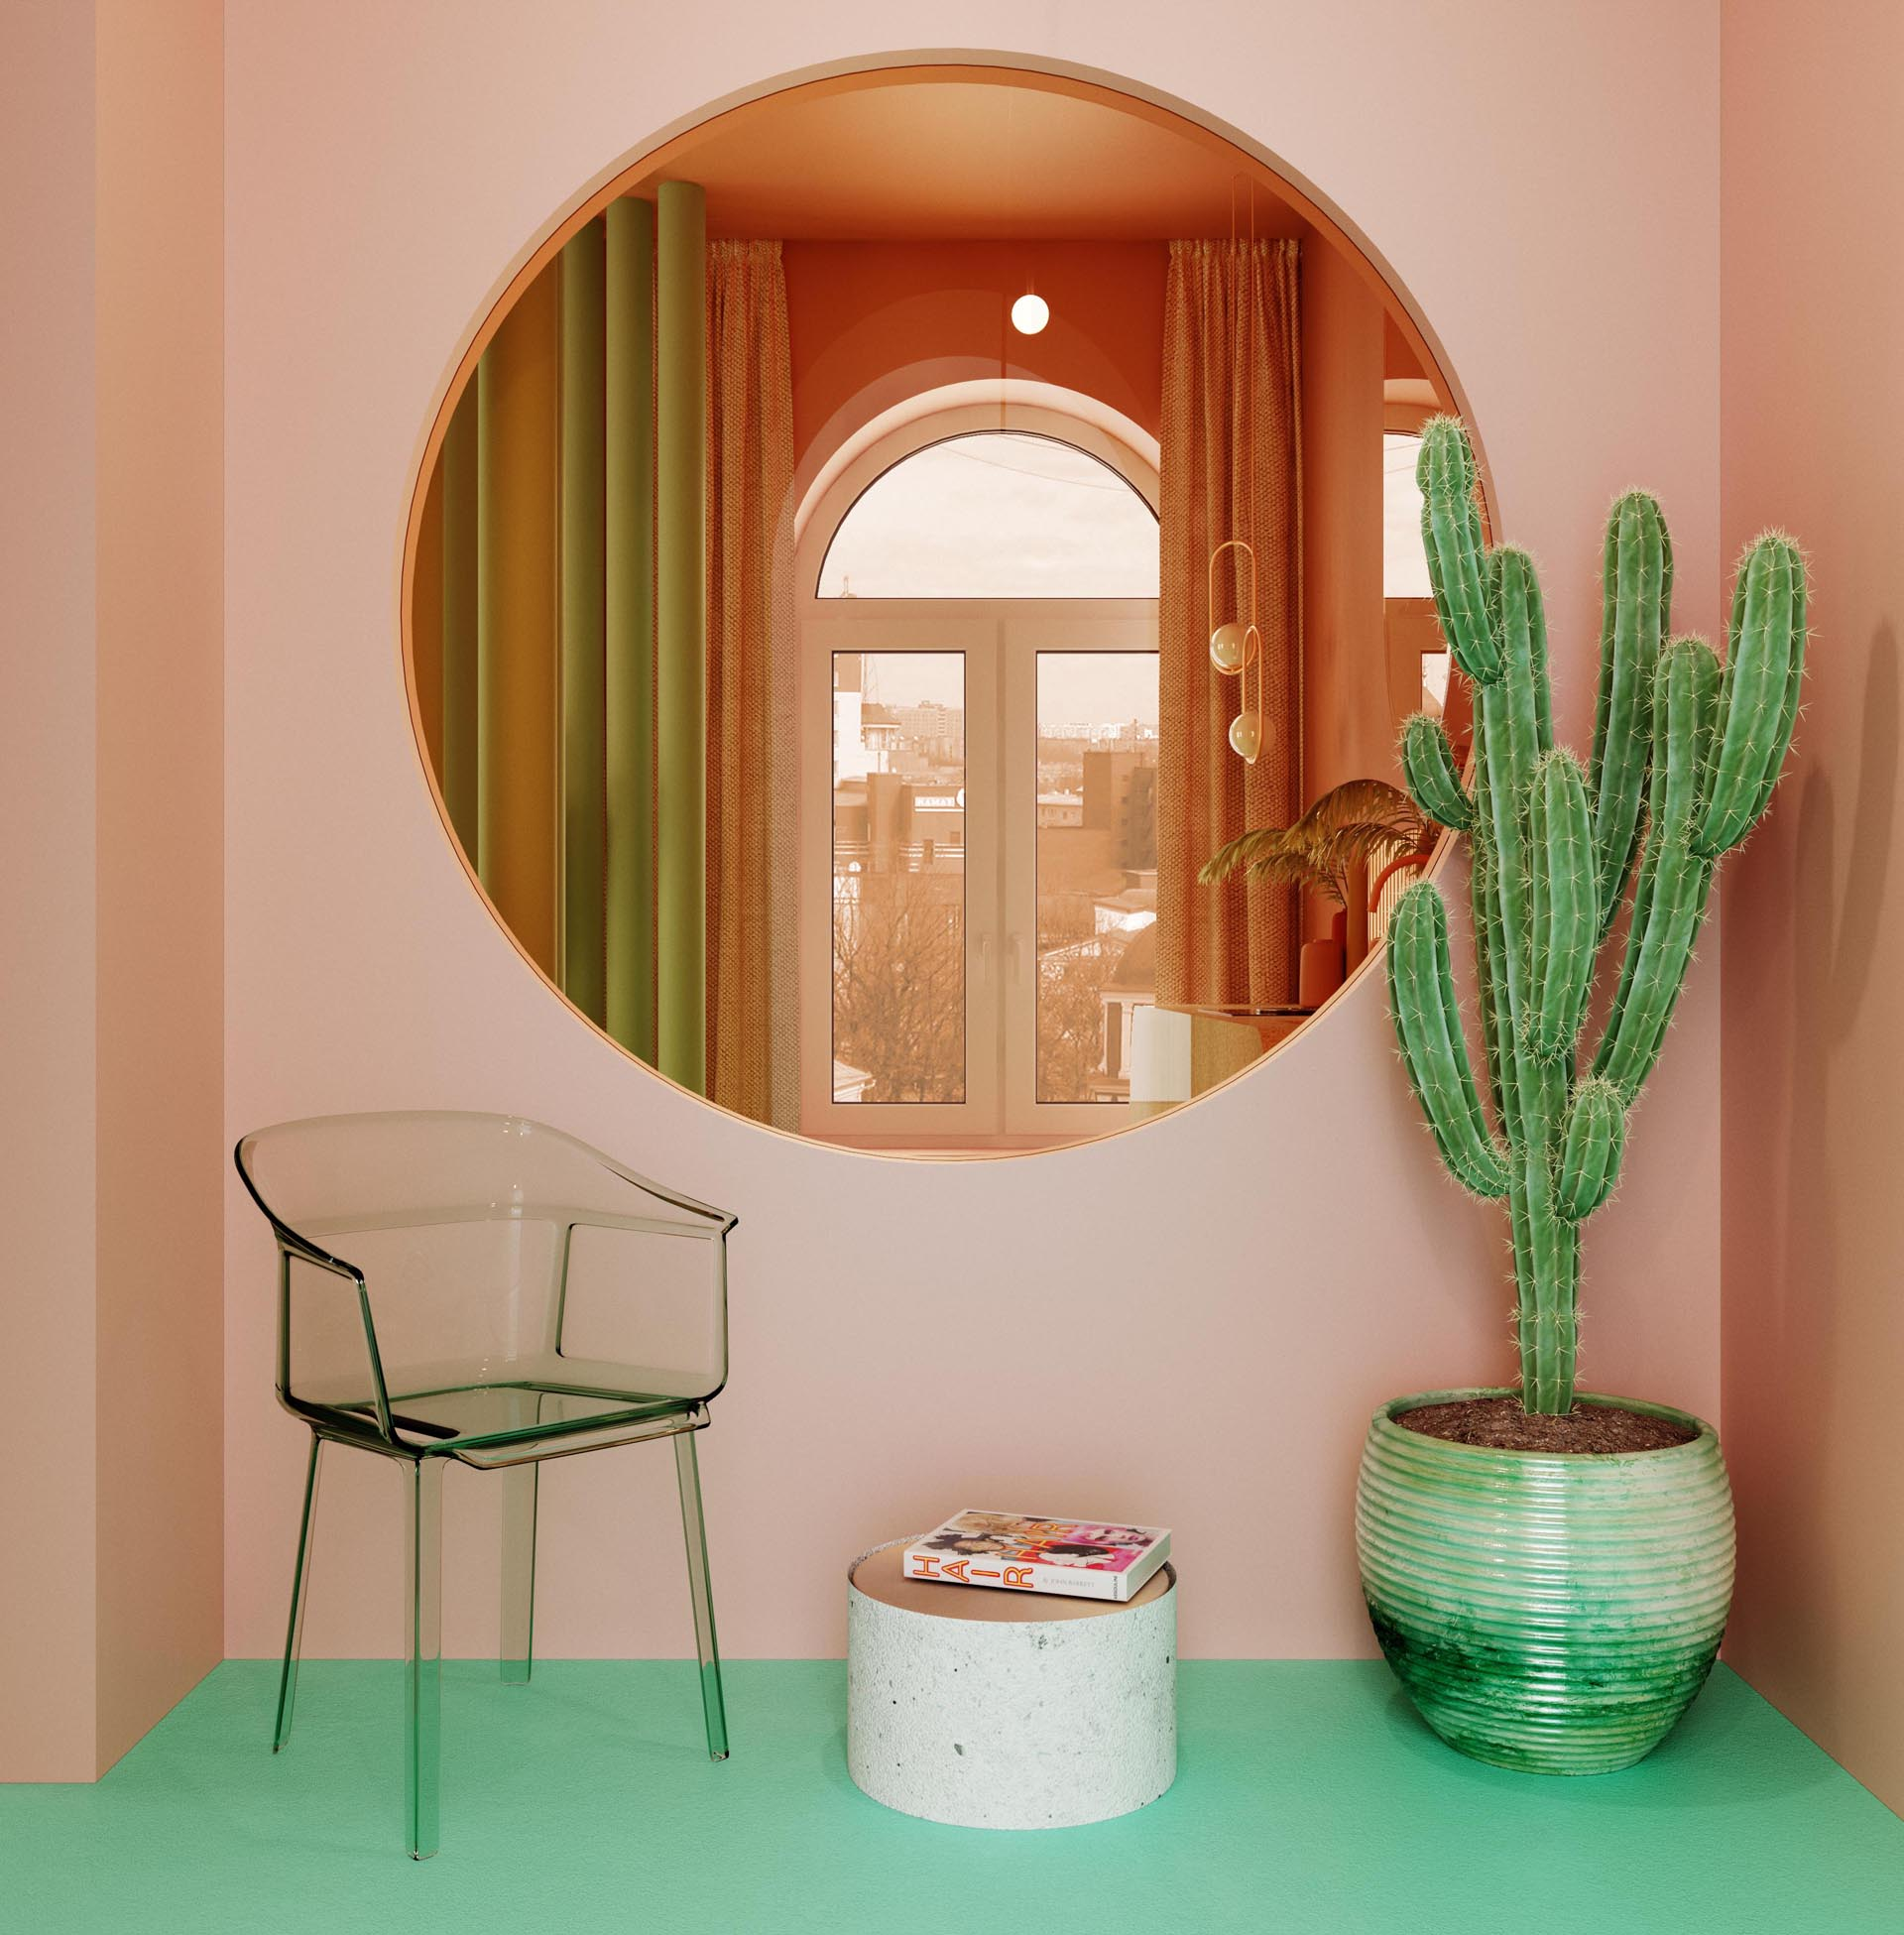 This modern entryway includes pink walls, a transparent armchair with a green tinge, a large round window with views of the kitchen through orange tinted plastic, and a potted cactus.